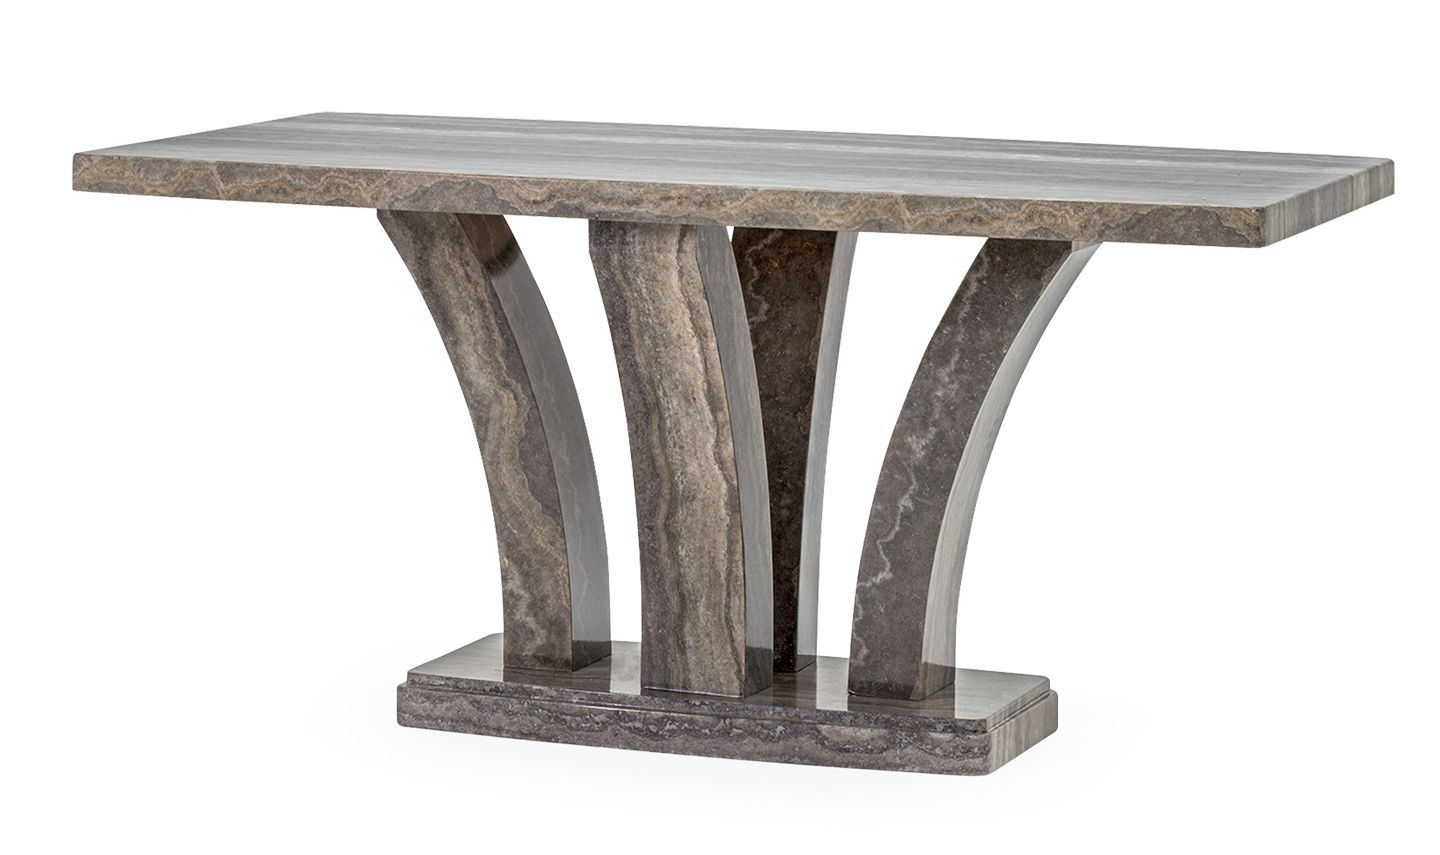 Aquila High Gloss Pearl Grey Marble Medium Dining Table 18Vd47 Intended For Famous Medium Dining Tables (View 21 of 25)